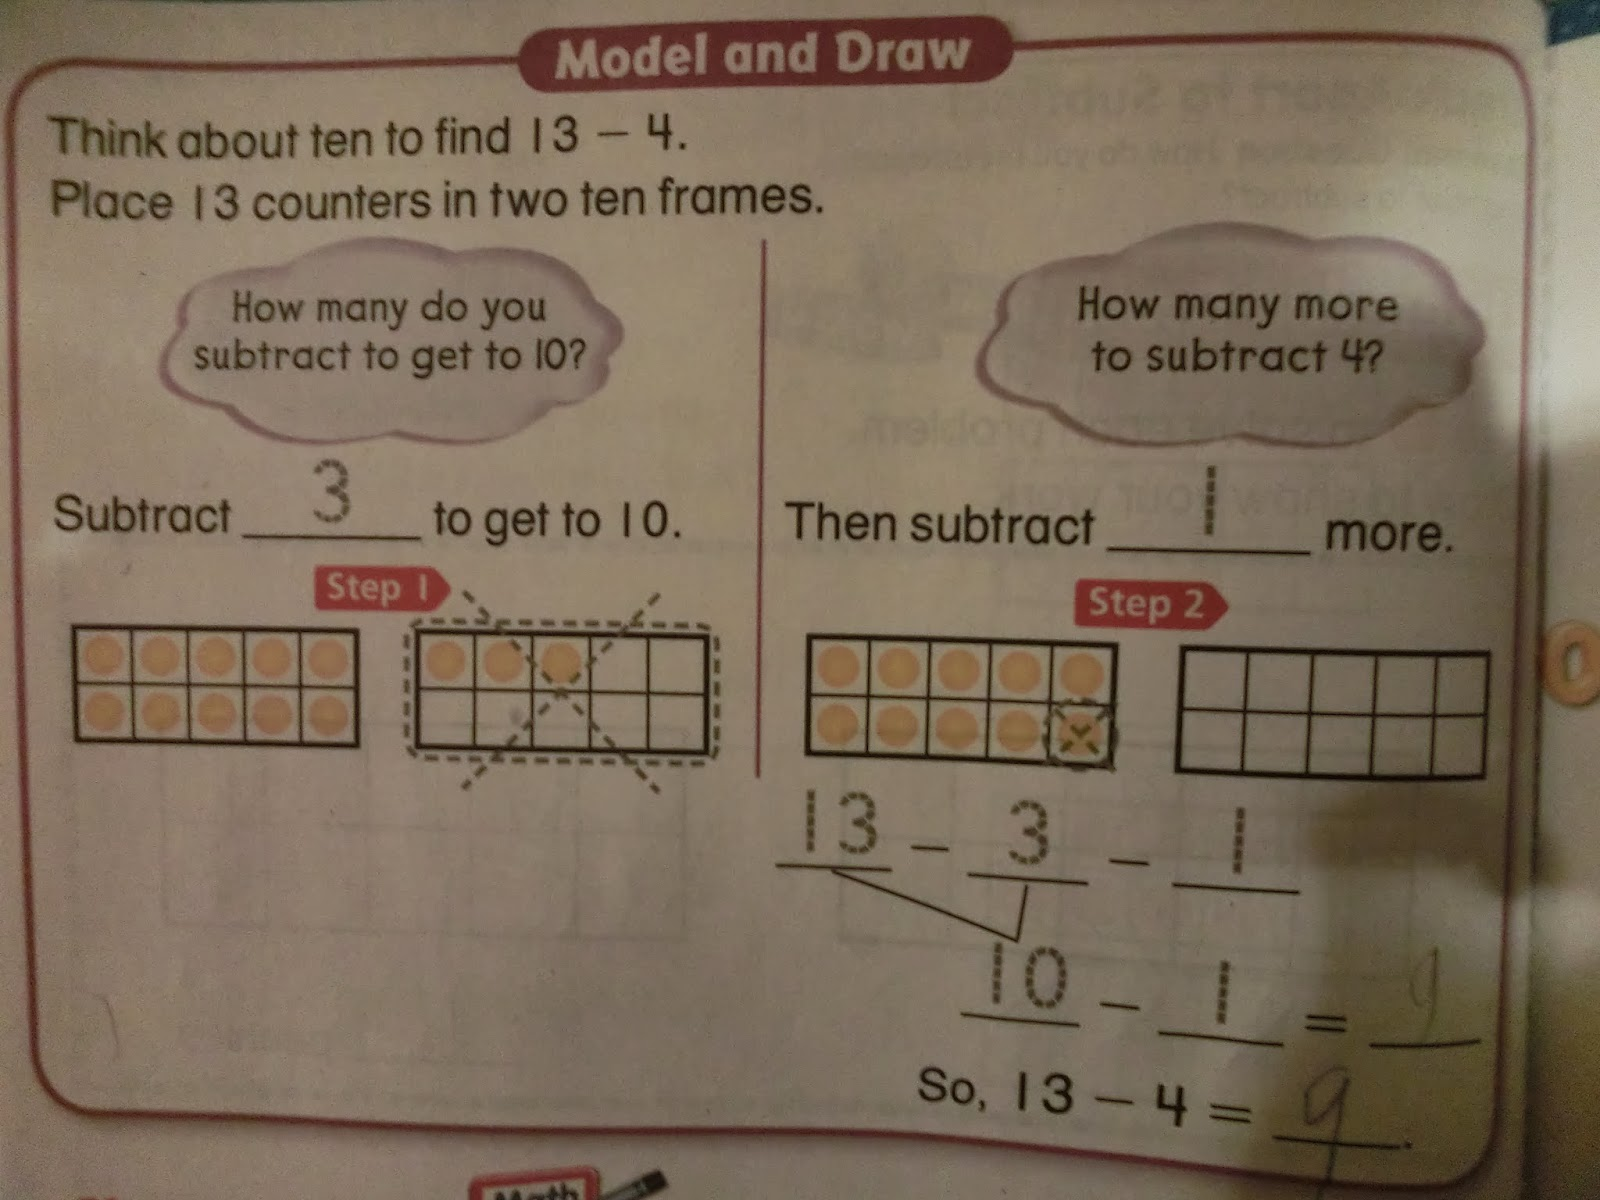 Common Core Math: What's 13-4? Don't Ask Common Core